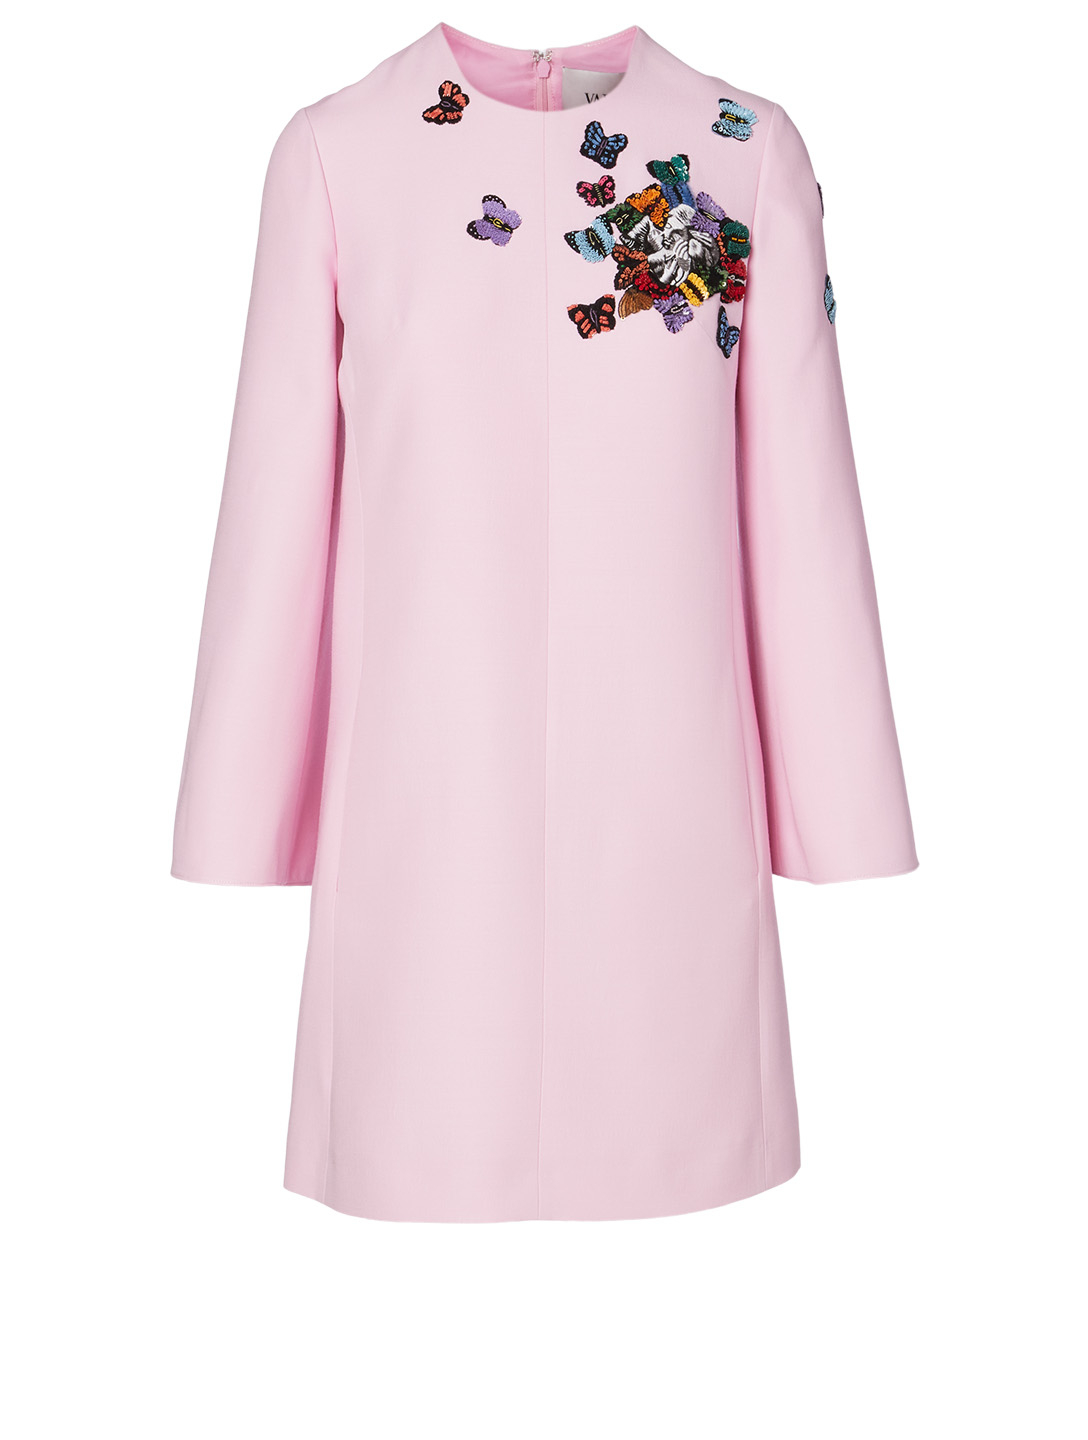 VALENTINO Wool And Silk Dress With Butterfly Embroidery Women's Pink